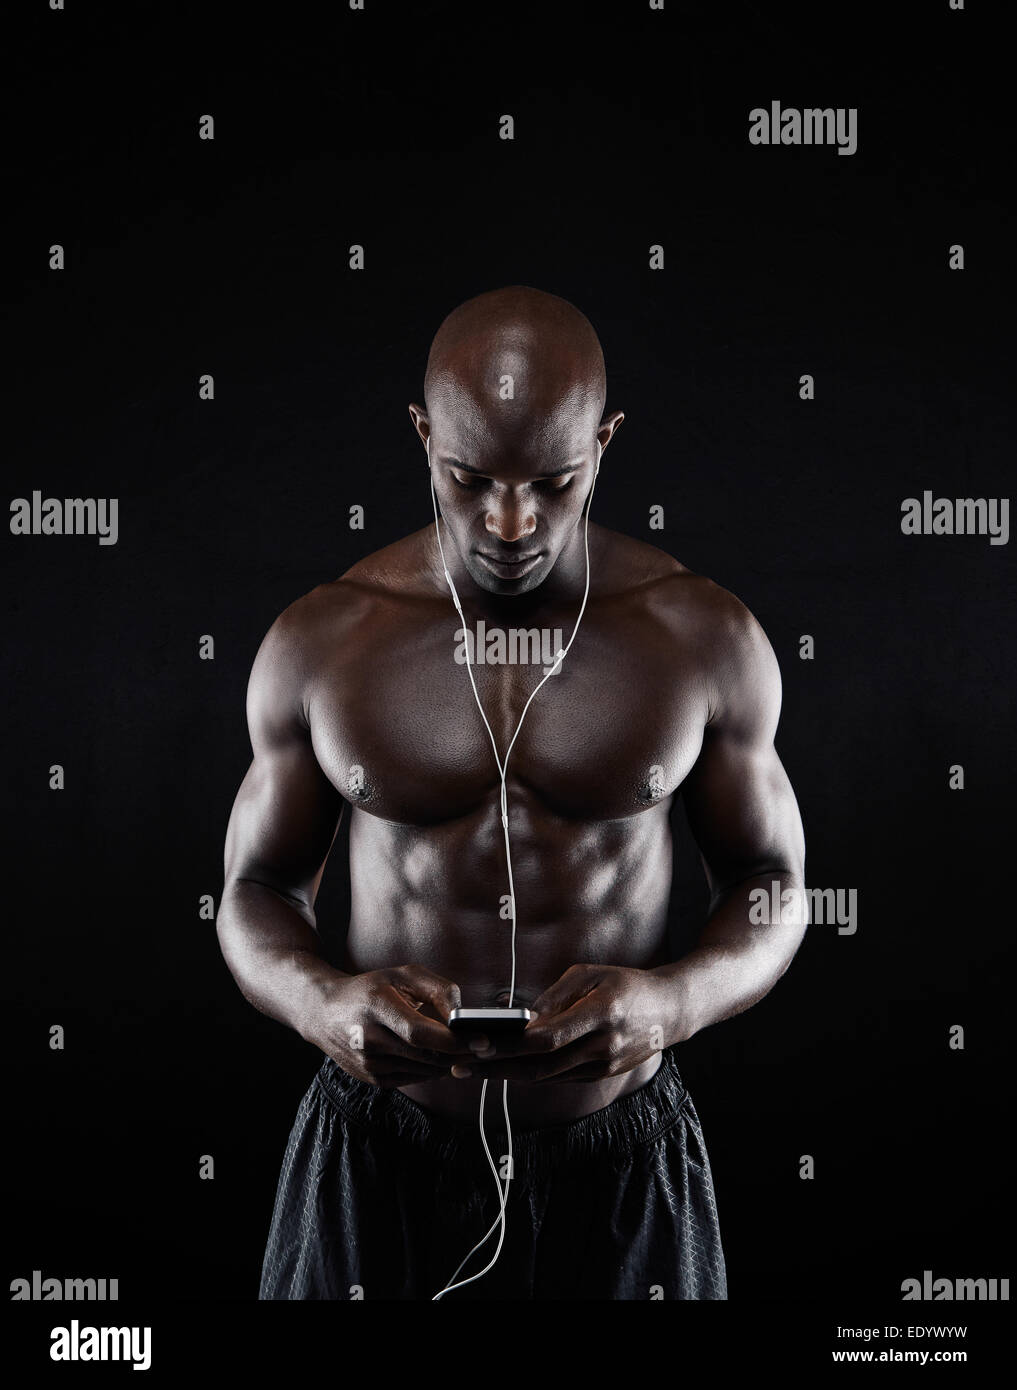 Portrait of young man listening music on mobile phone against black background. Shirtless African muscular male - Stock Image